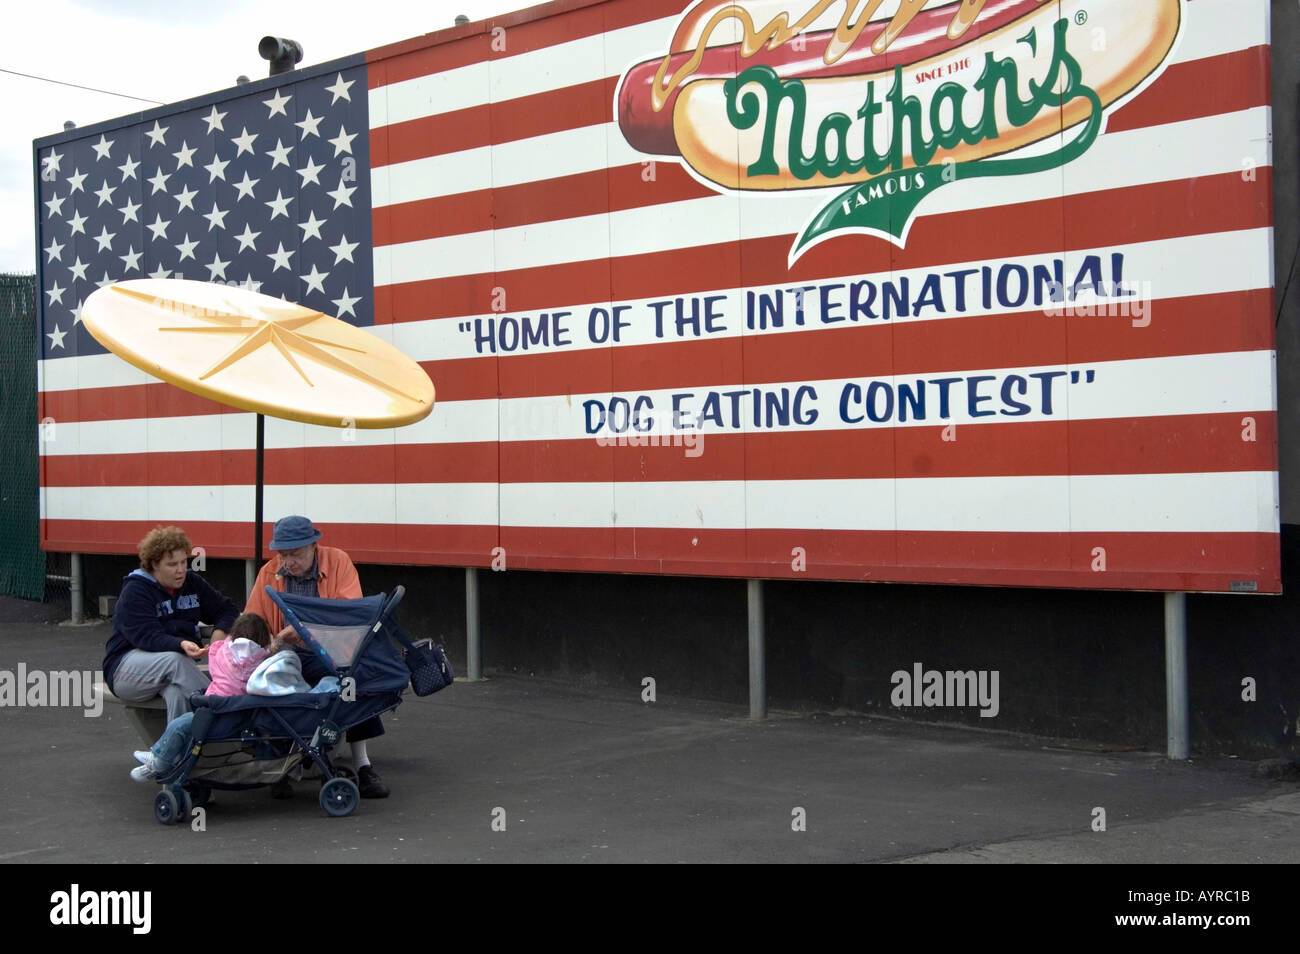 us-flag-advertising-hot-dog-eating-conte